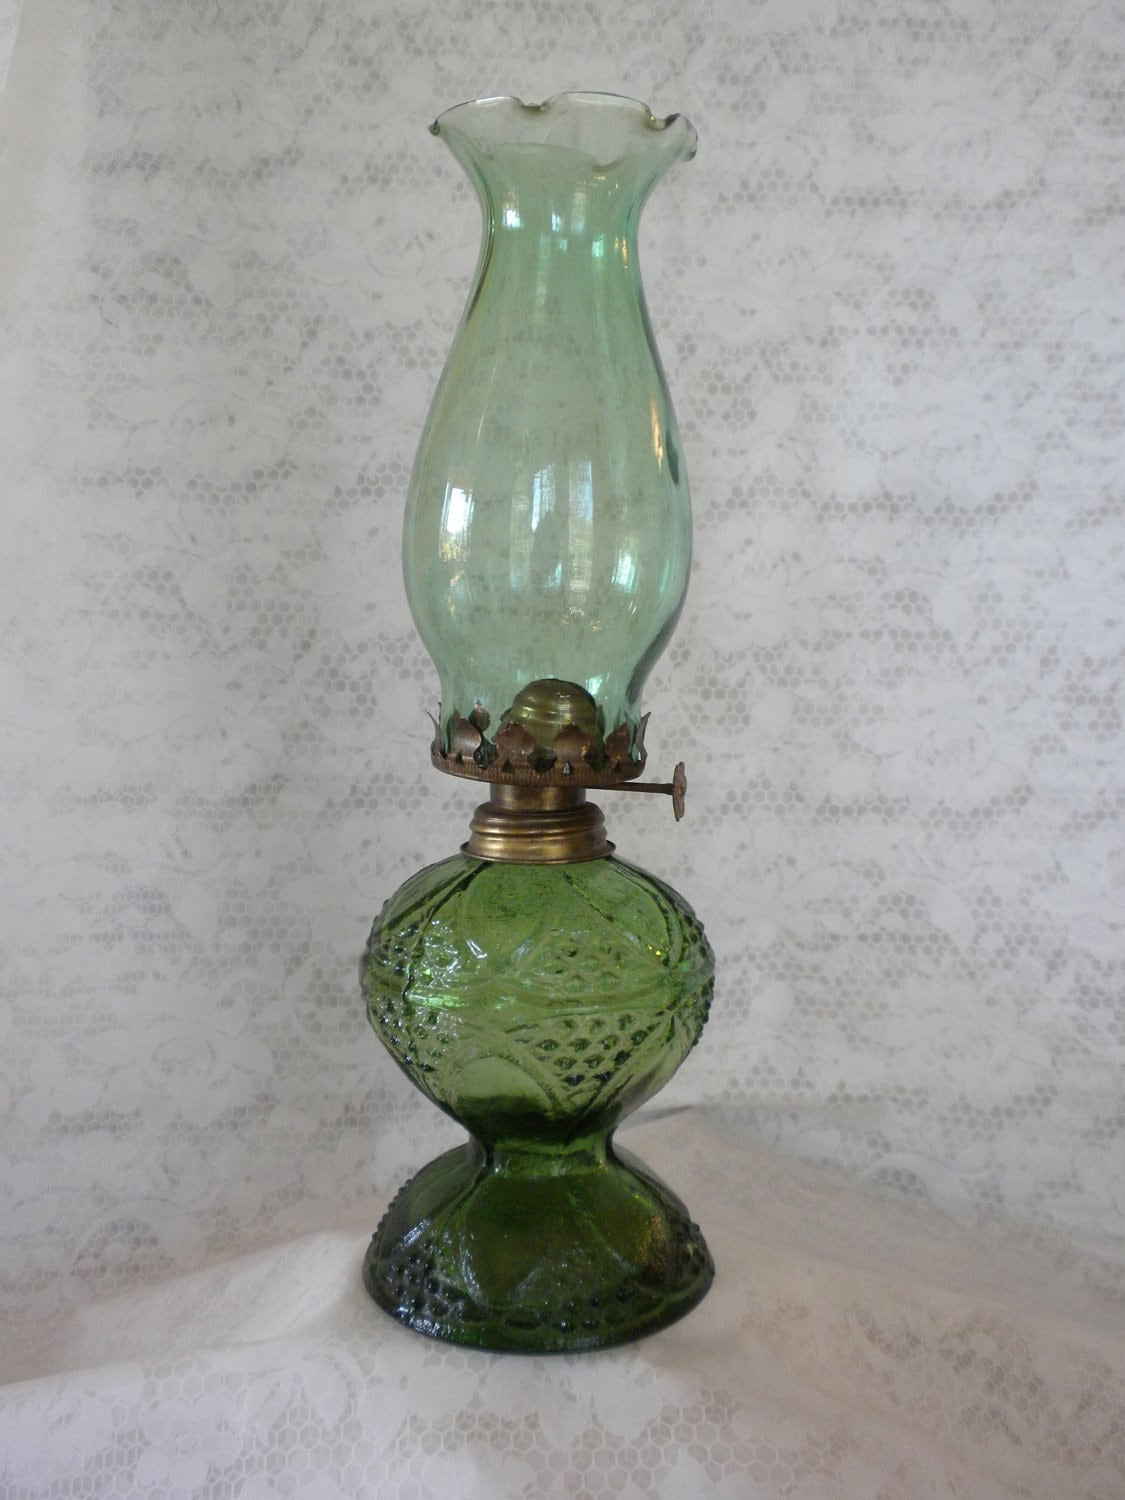 Vintage Oil Lamp Olive Green Textured Glass Original